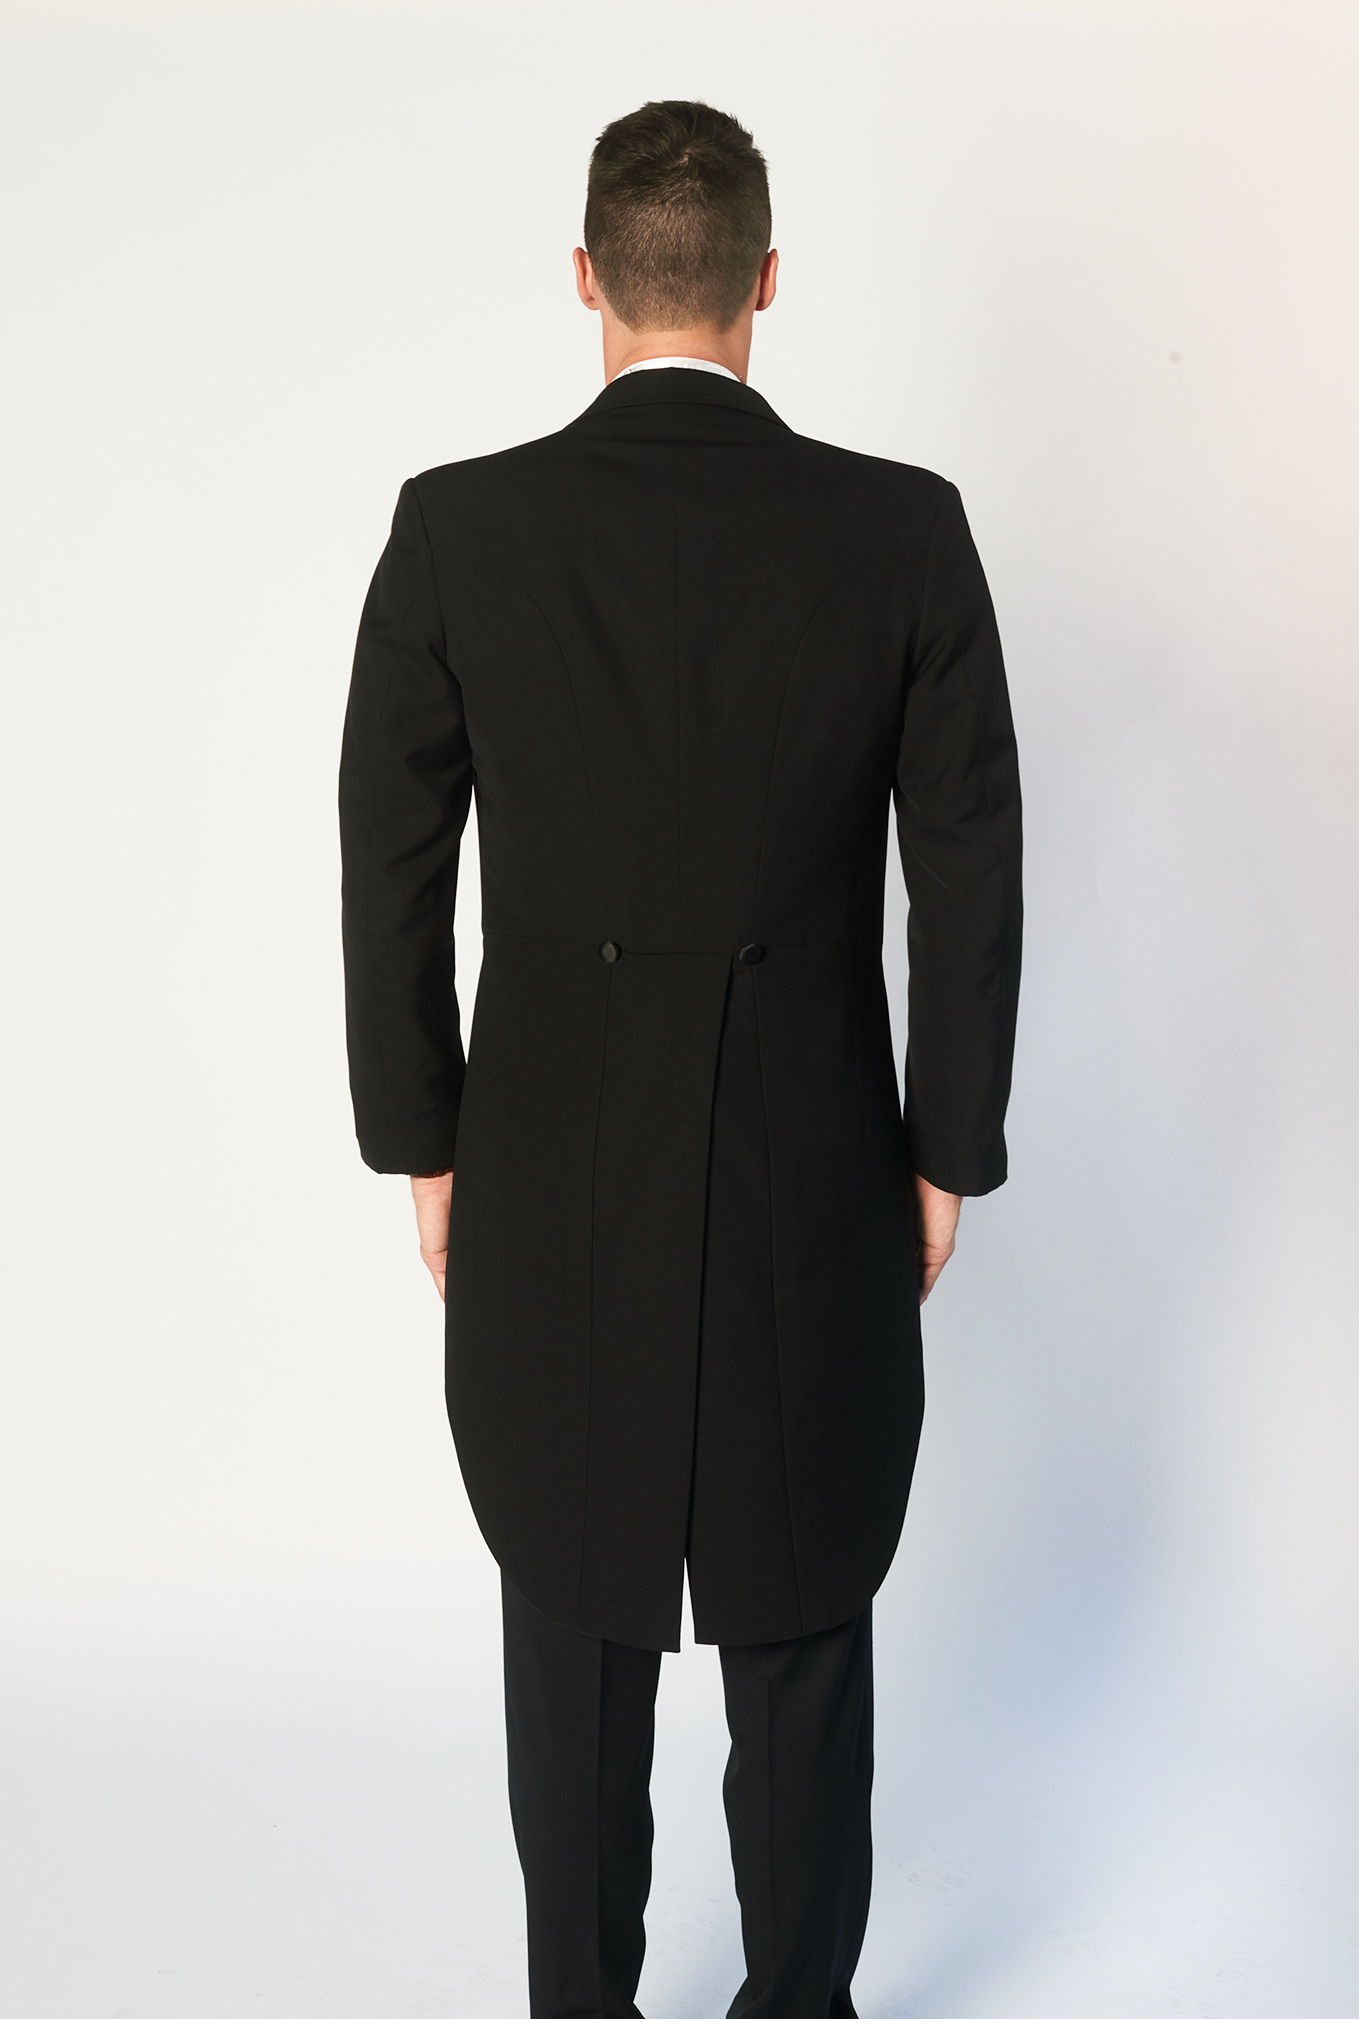 The Tails black suit back view